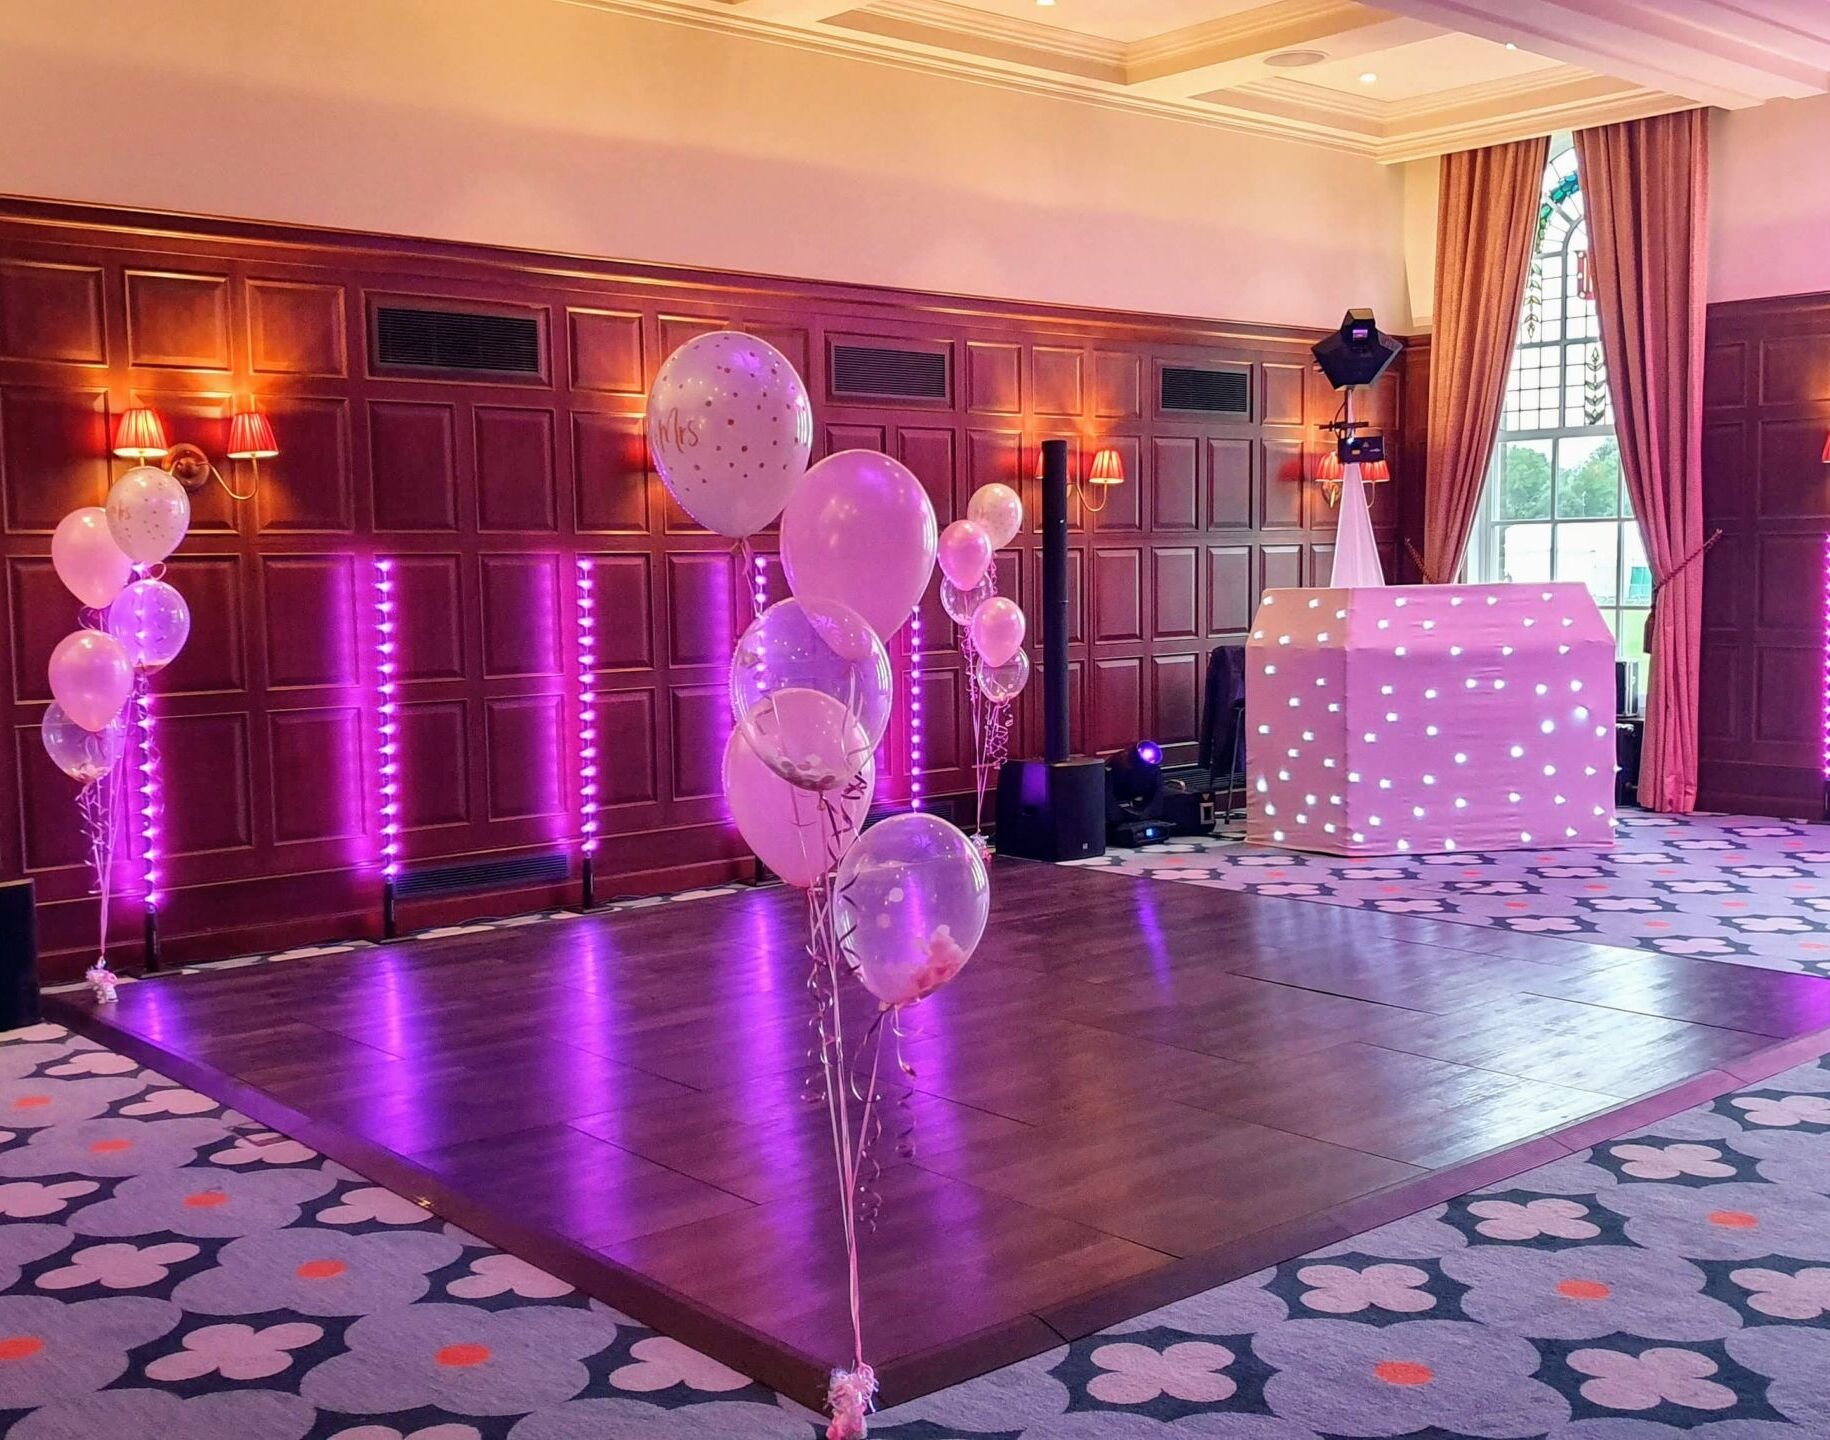 Mobile Disco with pink uplighting and balloons at the University Arms Cambridge